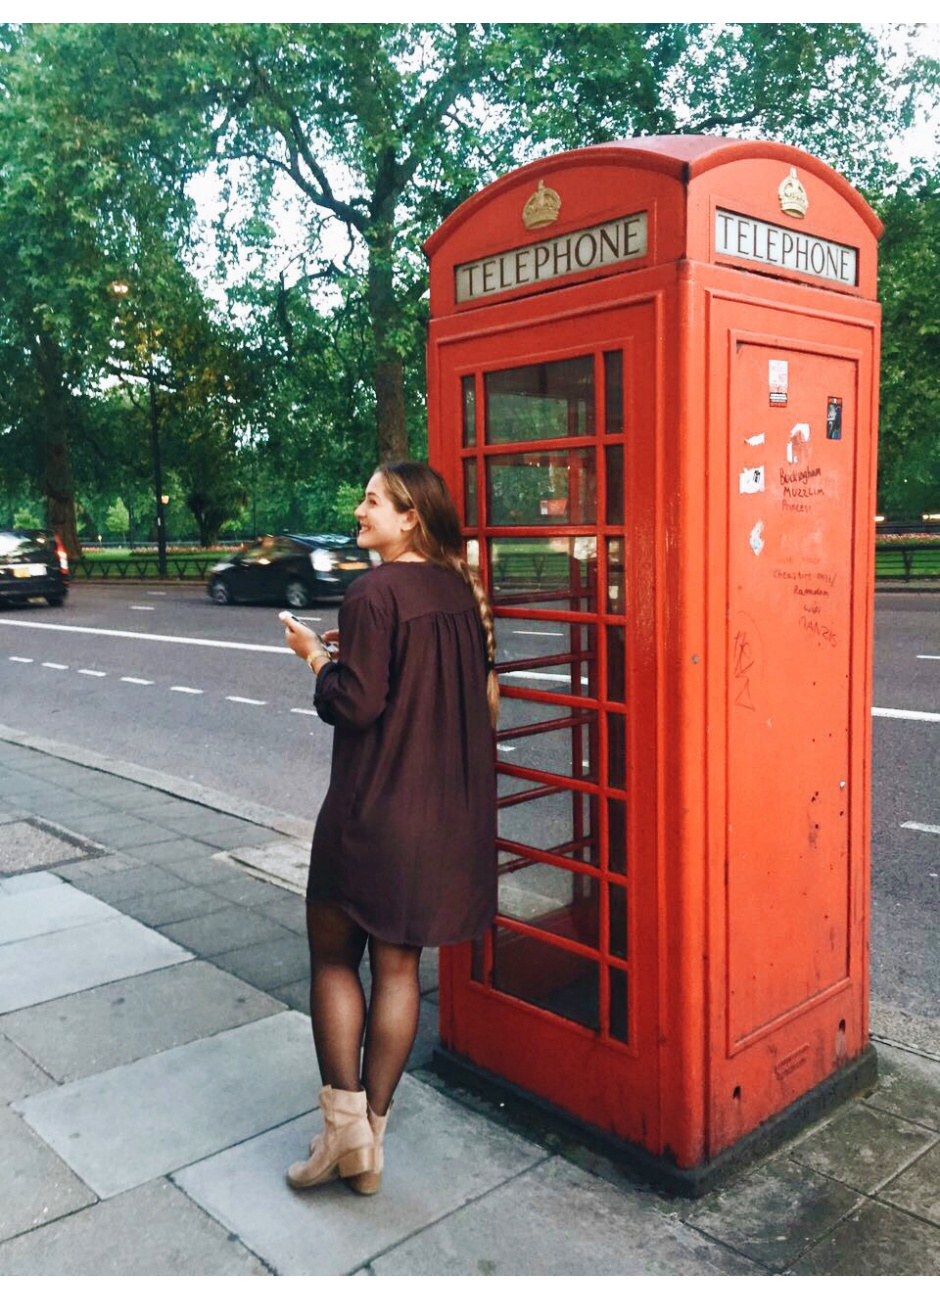 London Calling: Discovering the City with Marriott Hotels